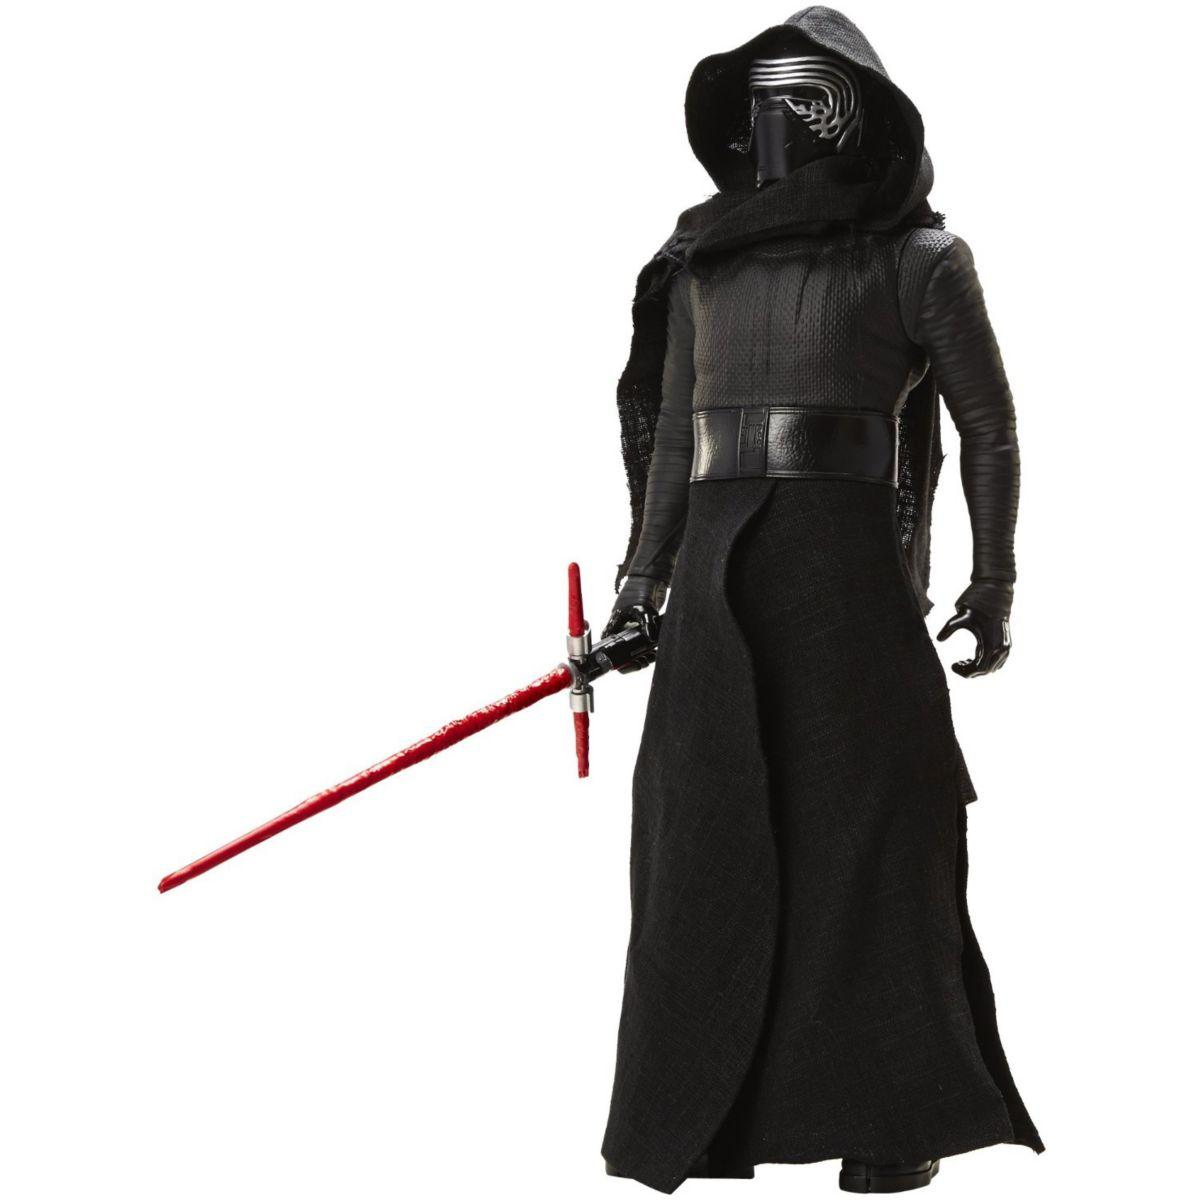 Figurine polymark kylo ren 50cm (photo)